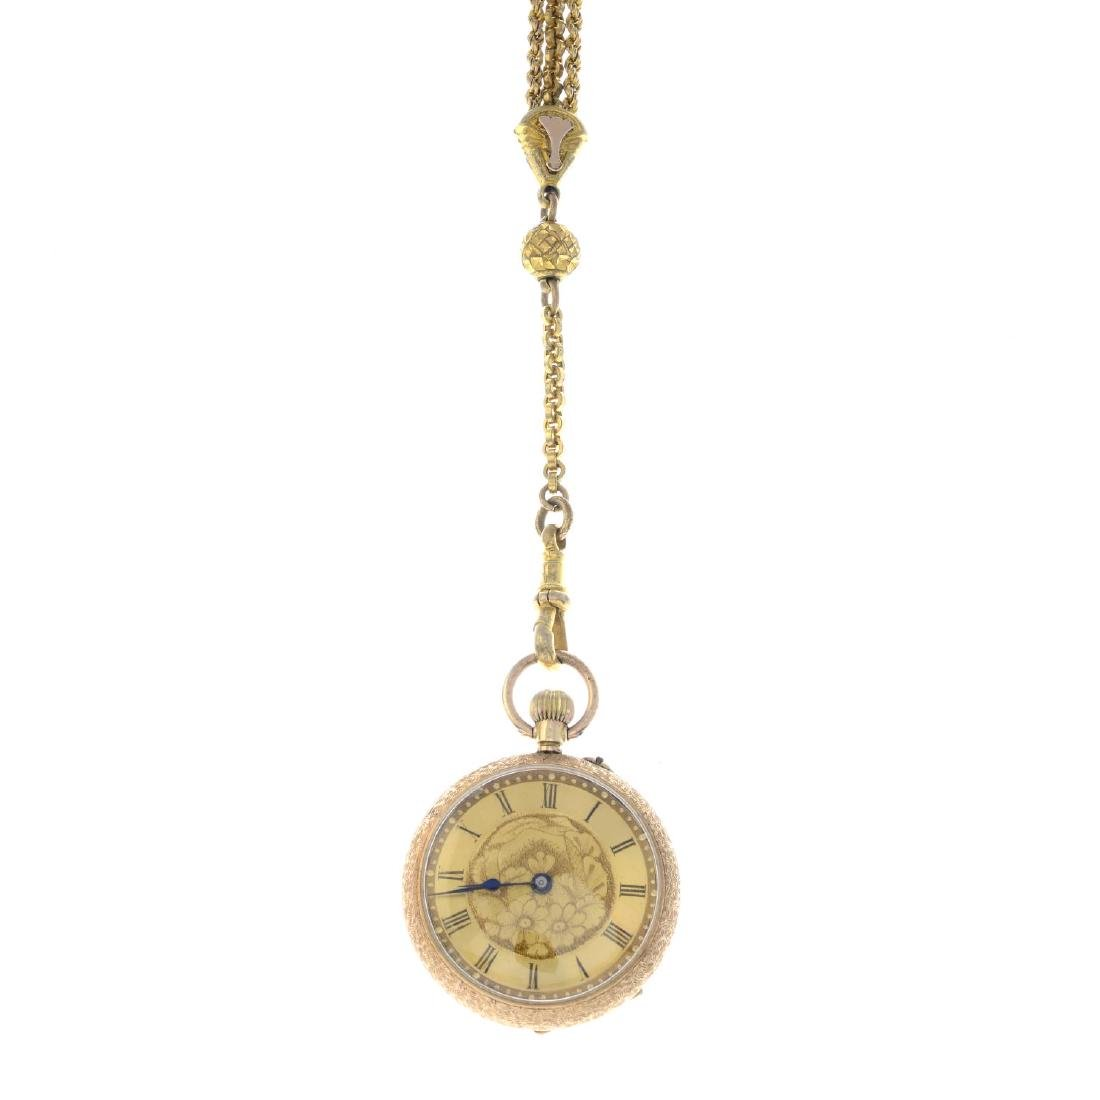 An early 20th century 14ct gold enamel fob watch. The